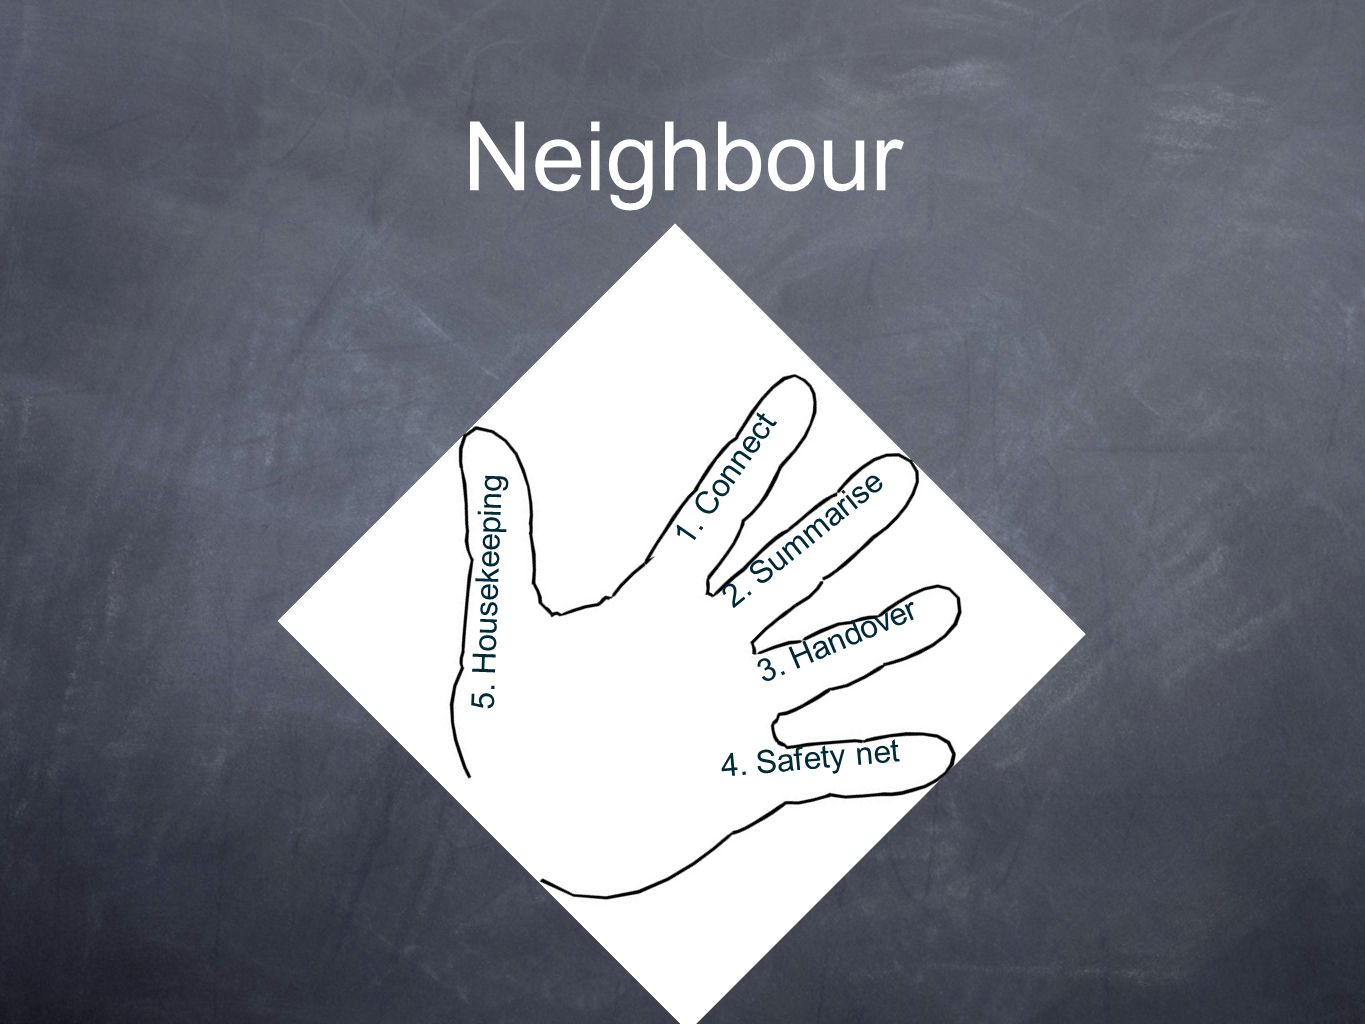 Neighbour 5. Housekeepingxt 1. Connectt 2. Summarise 3. Handover 4. Safety net